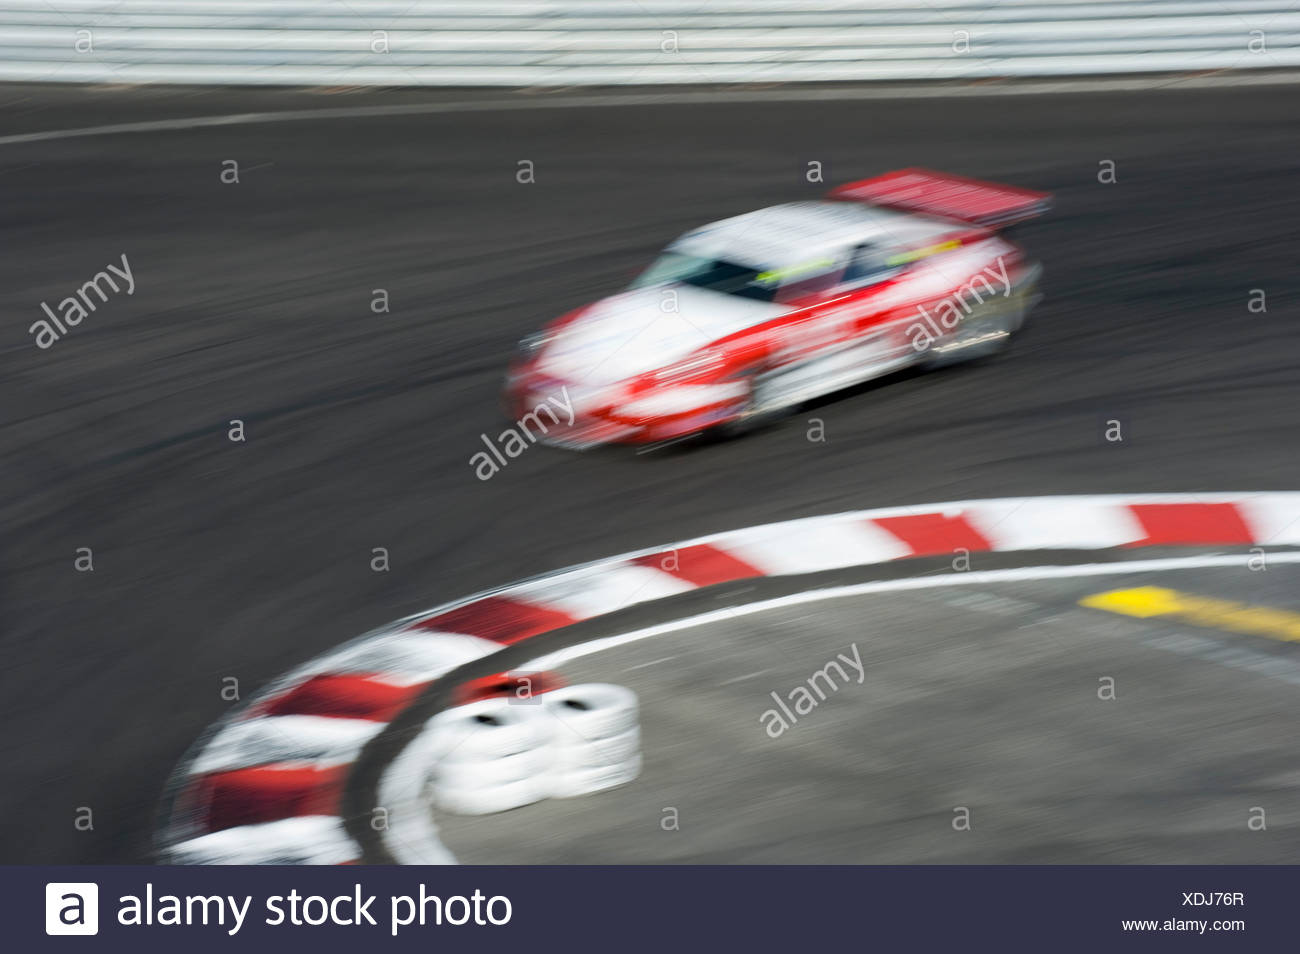 Motion blur of car race by the curve - Stock Image